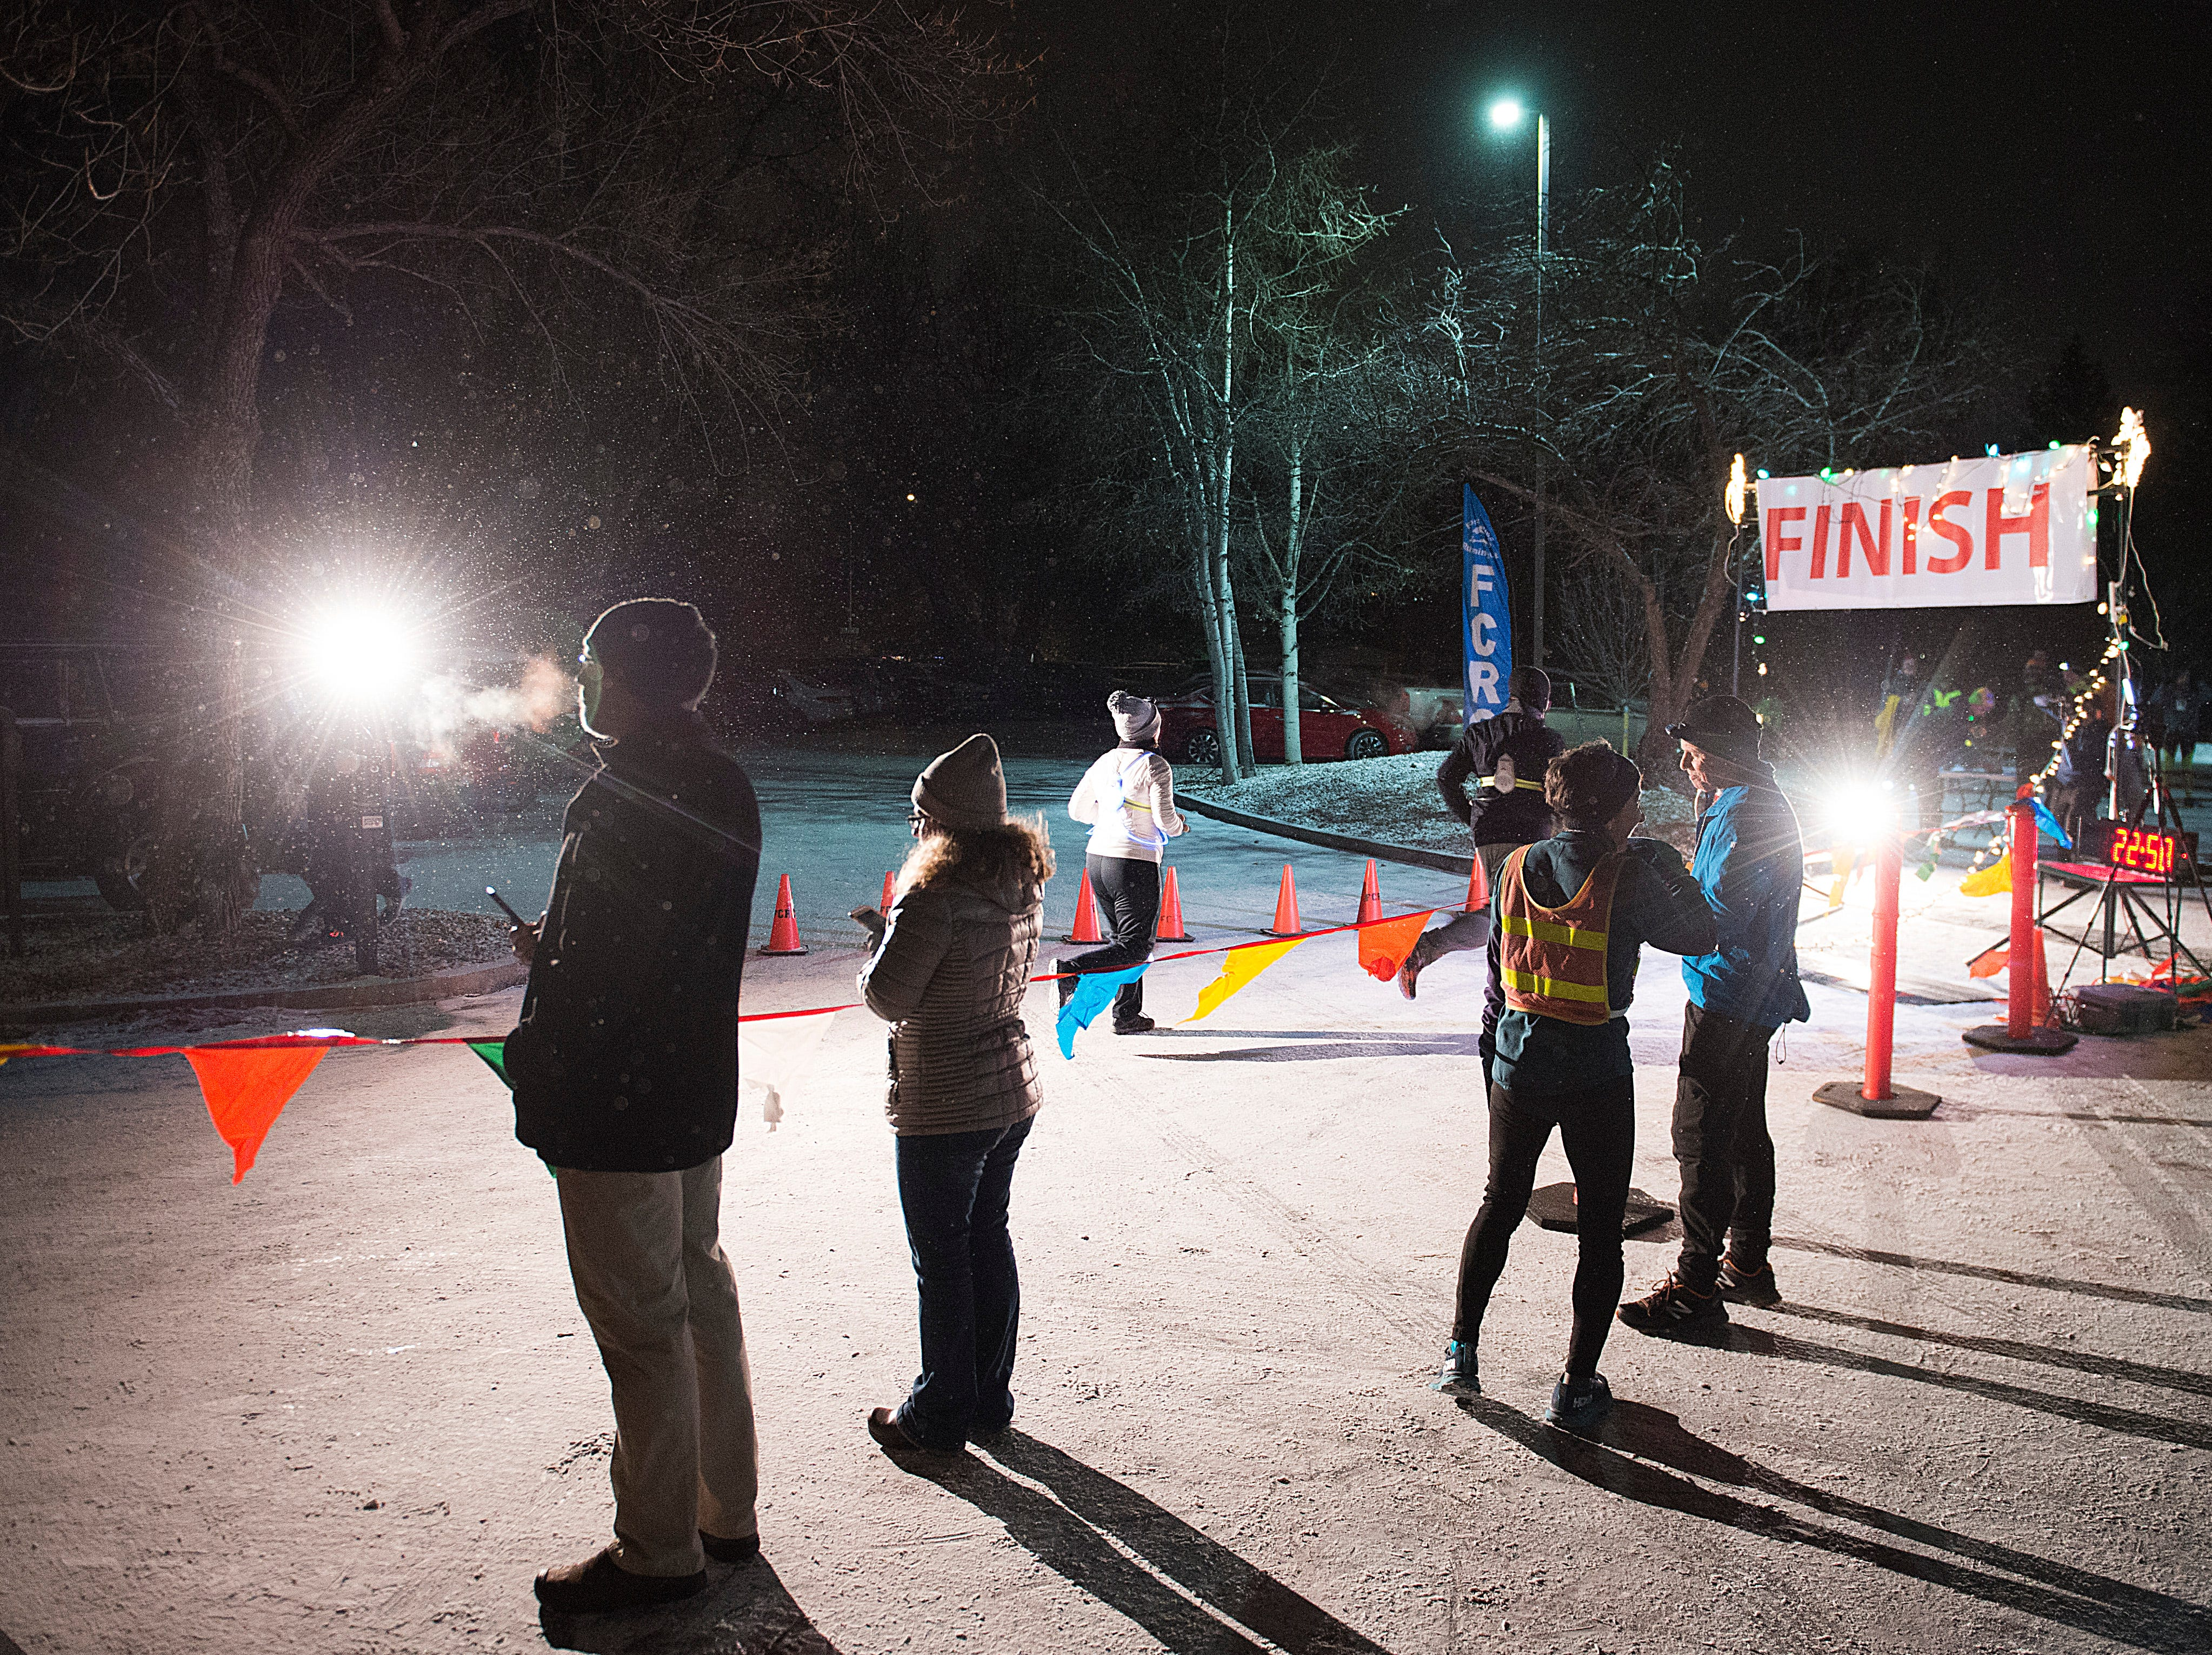 People cheer on runners as they cross the finish line in the Resolution Run 5K at Our Saviour's Lutheran Church on December 31, 2018. People braved single-digit temperatures to ring in the new year with the run.